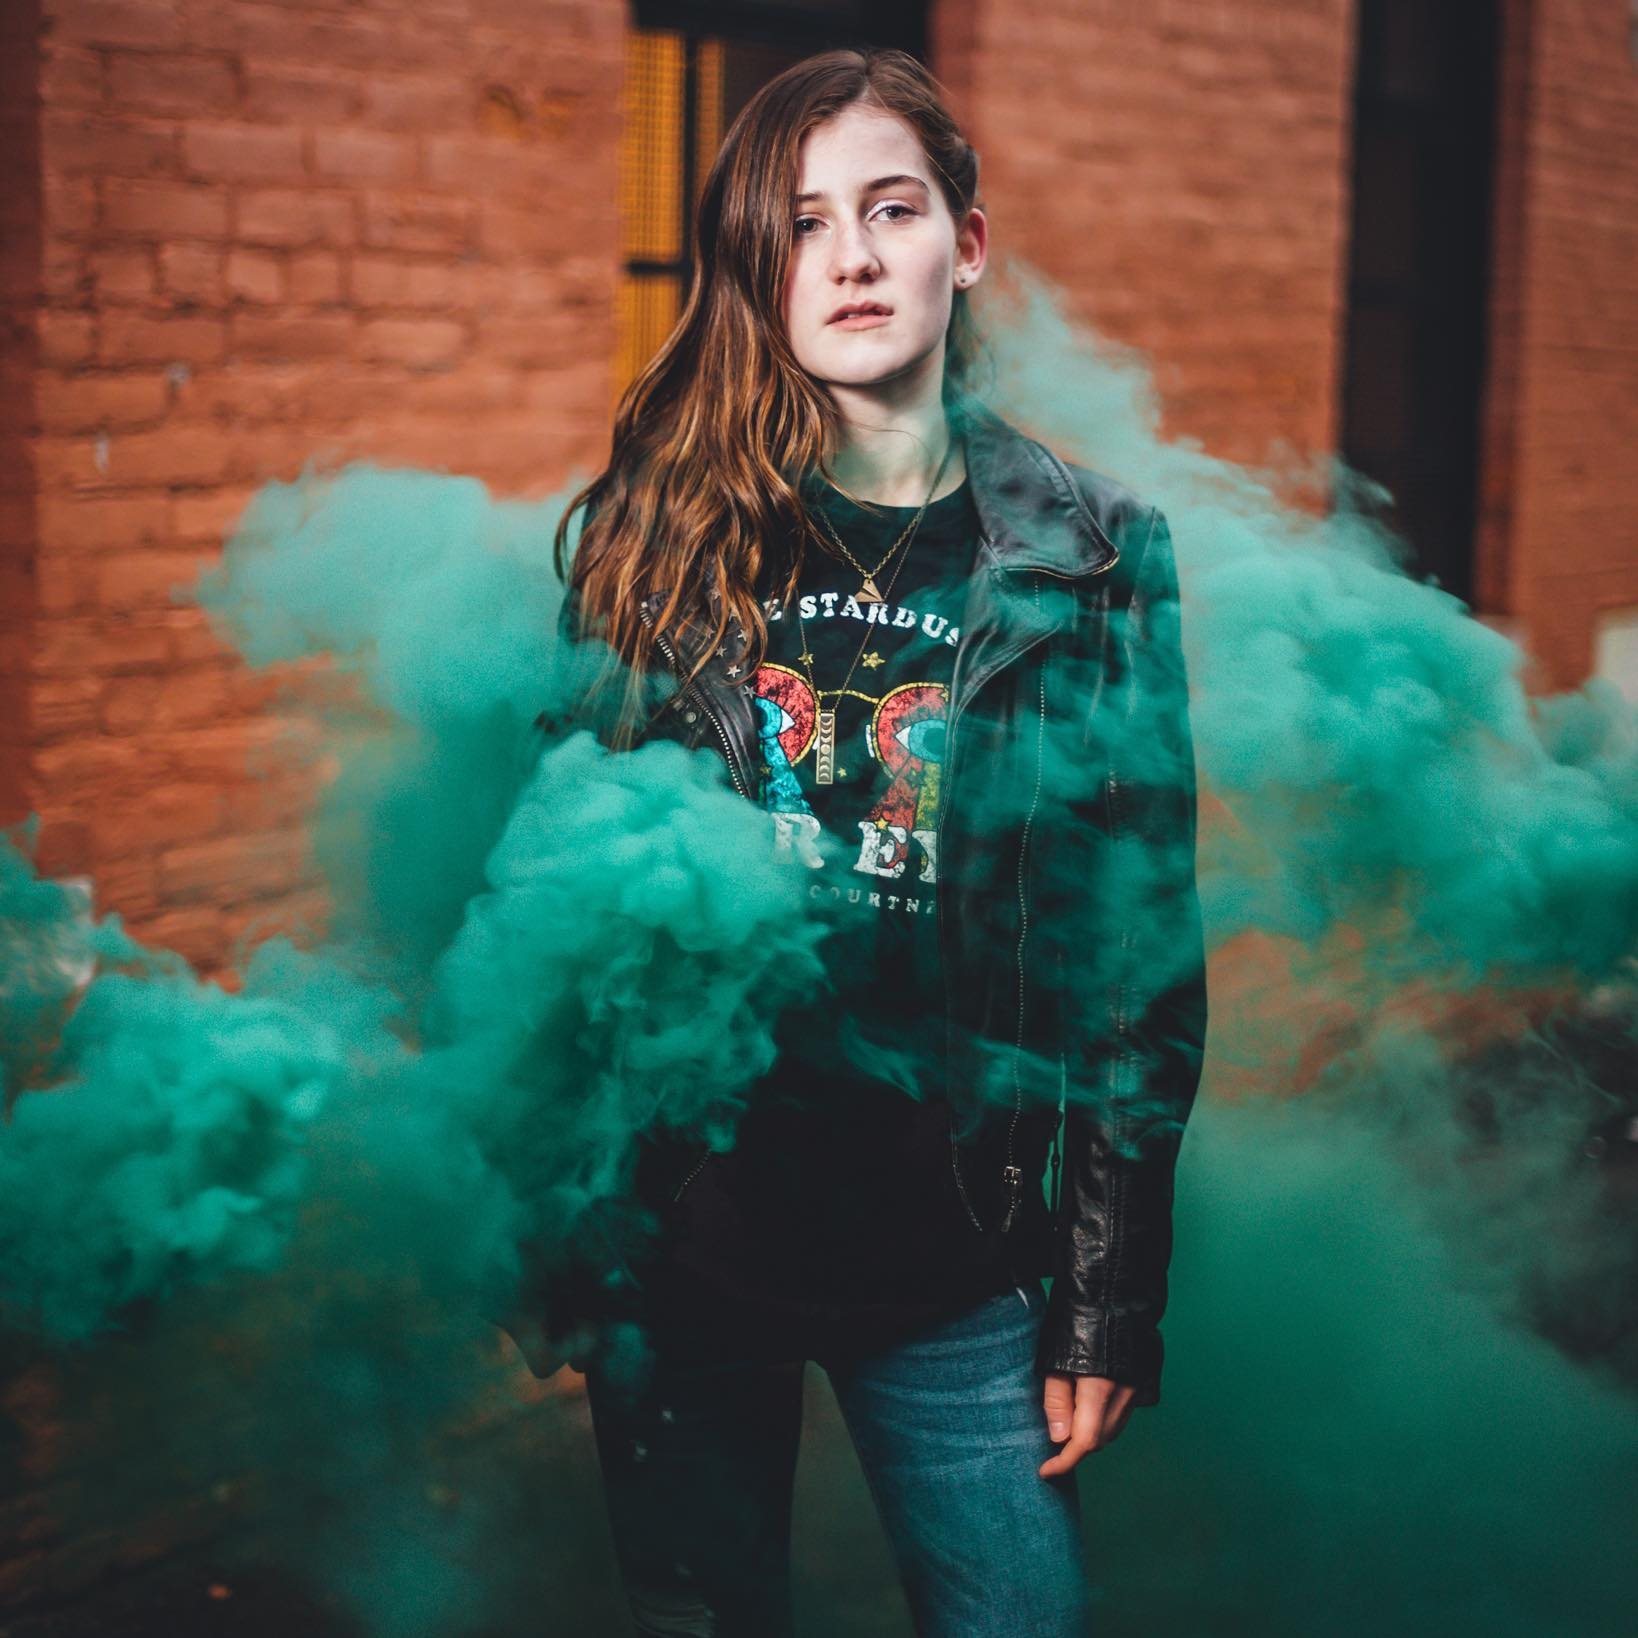 Photo of singer-songwriter Sydney Irving in a haze of emerald green smoke in front of an orange brick building